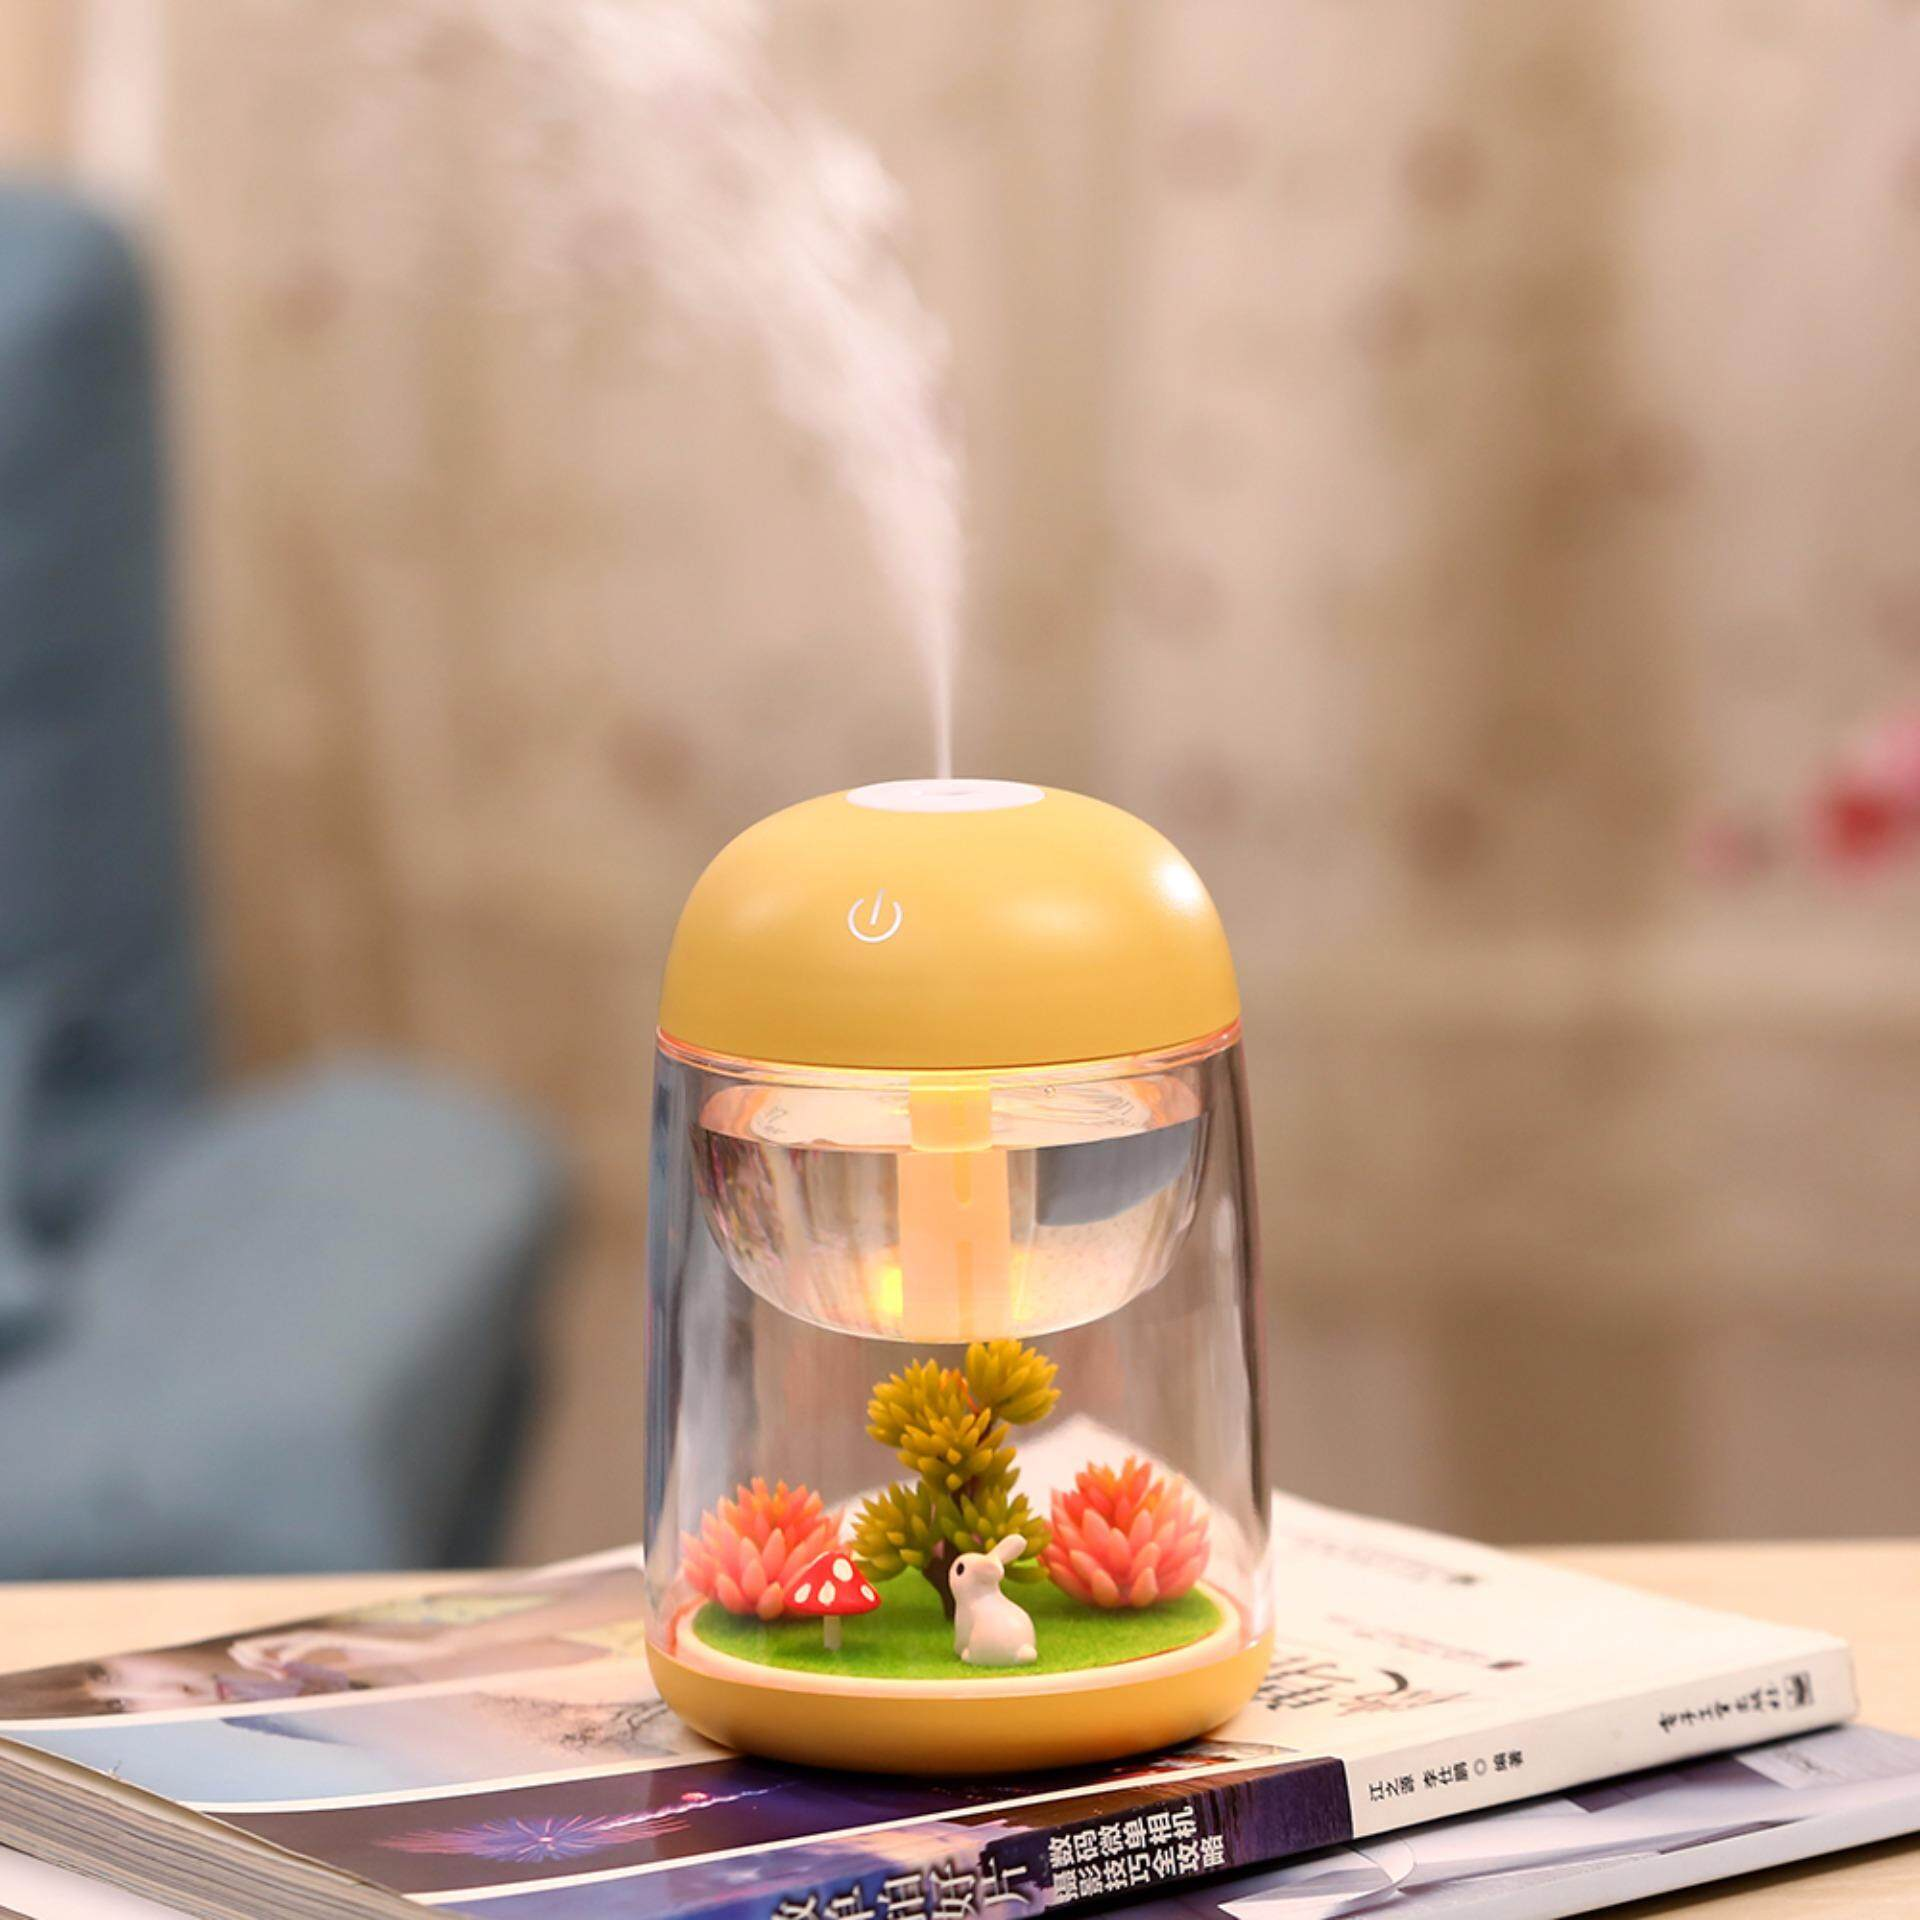 Micro Landscape Usb Humidifier Car Air Purifier Essential Oil Diffuser 180Ml Aroma Essential Oil With Led Light Multi Use For Travel Office Desk Desktop Car Small Baby Bedroom With Water Bottle Yellow Intl Shopping